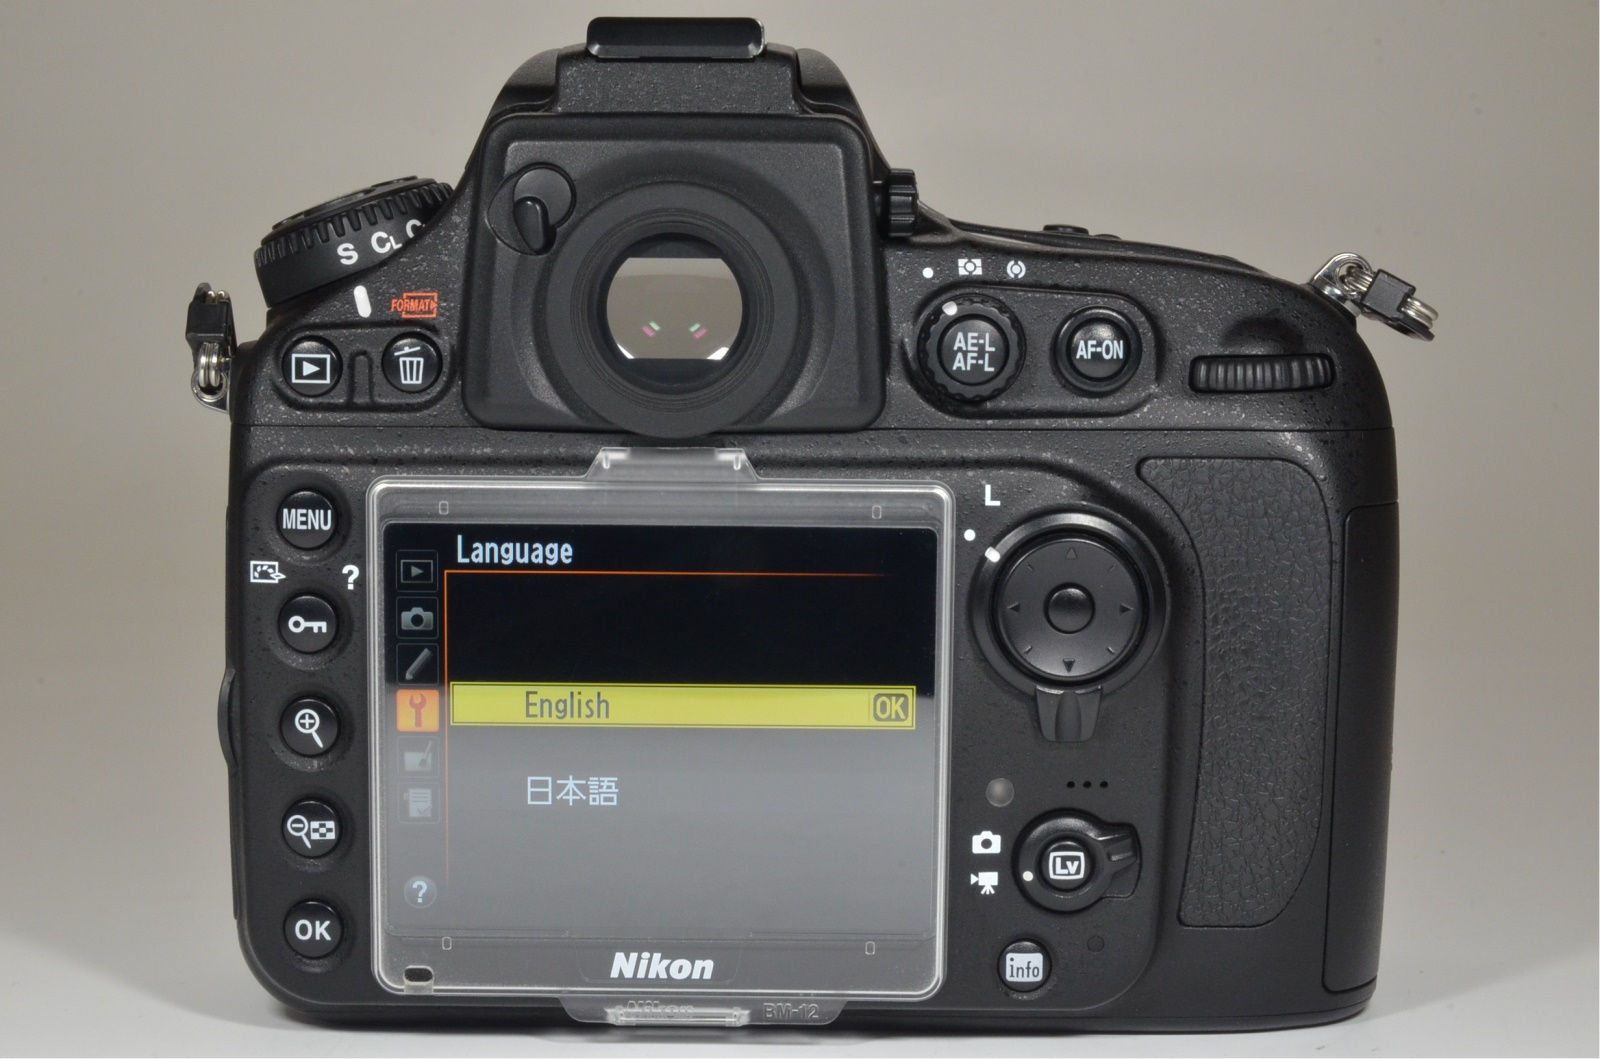 nikon d800 36.3mp digital slr camera shutter count 2135 from japan